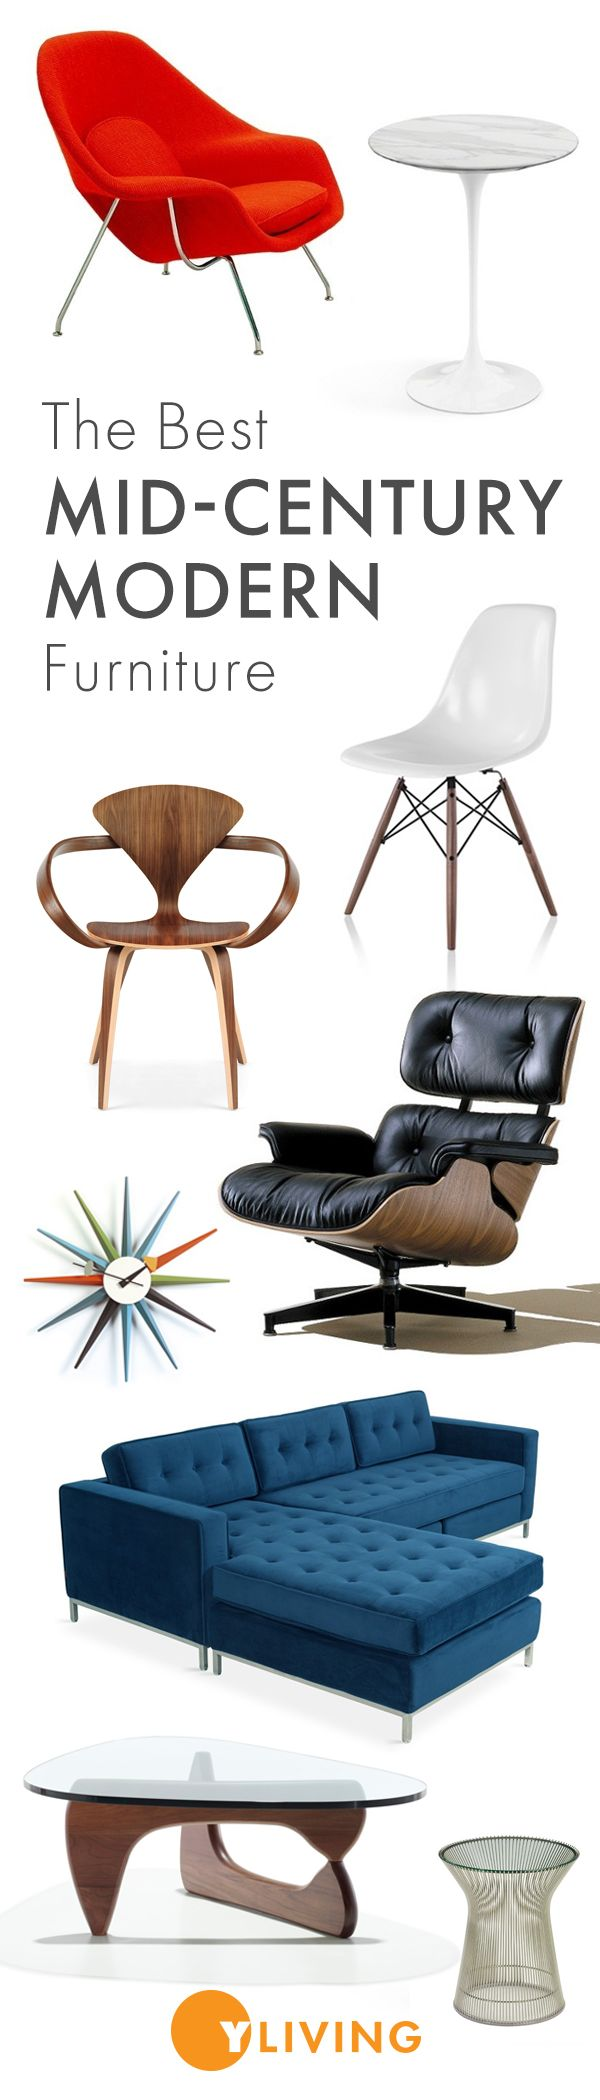 Explore our curated assortment of the best Mid Century Modern icons and designs that define the style. Shop Now >> http://www.yliving.com/features/_/N-1z141fe